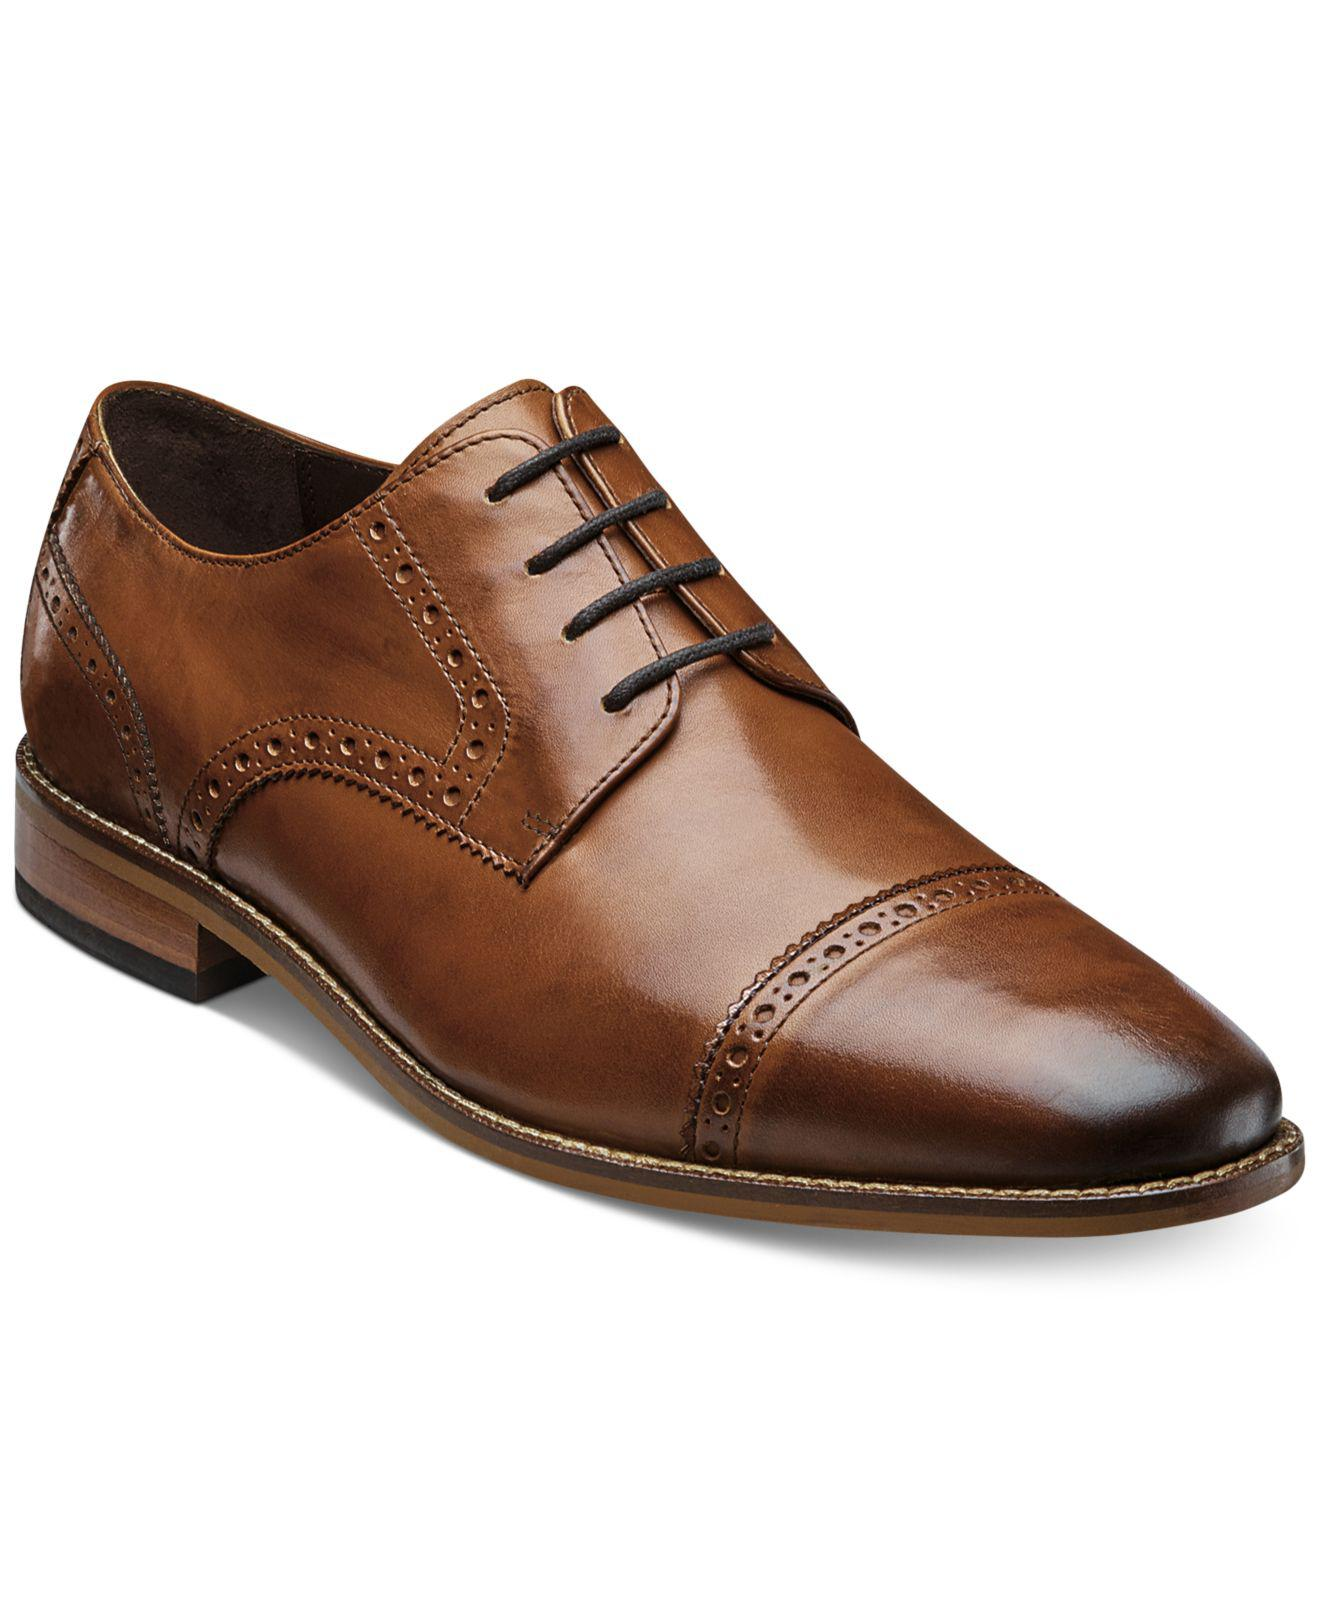 Best Price Florsheim Shoes